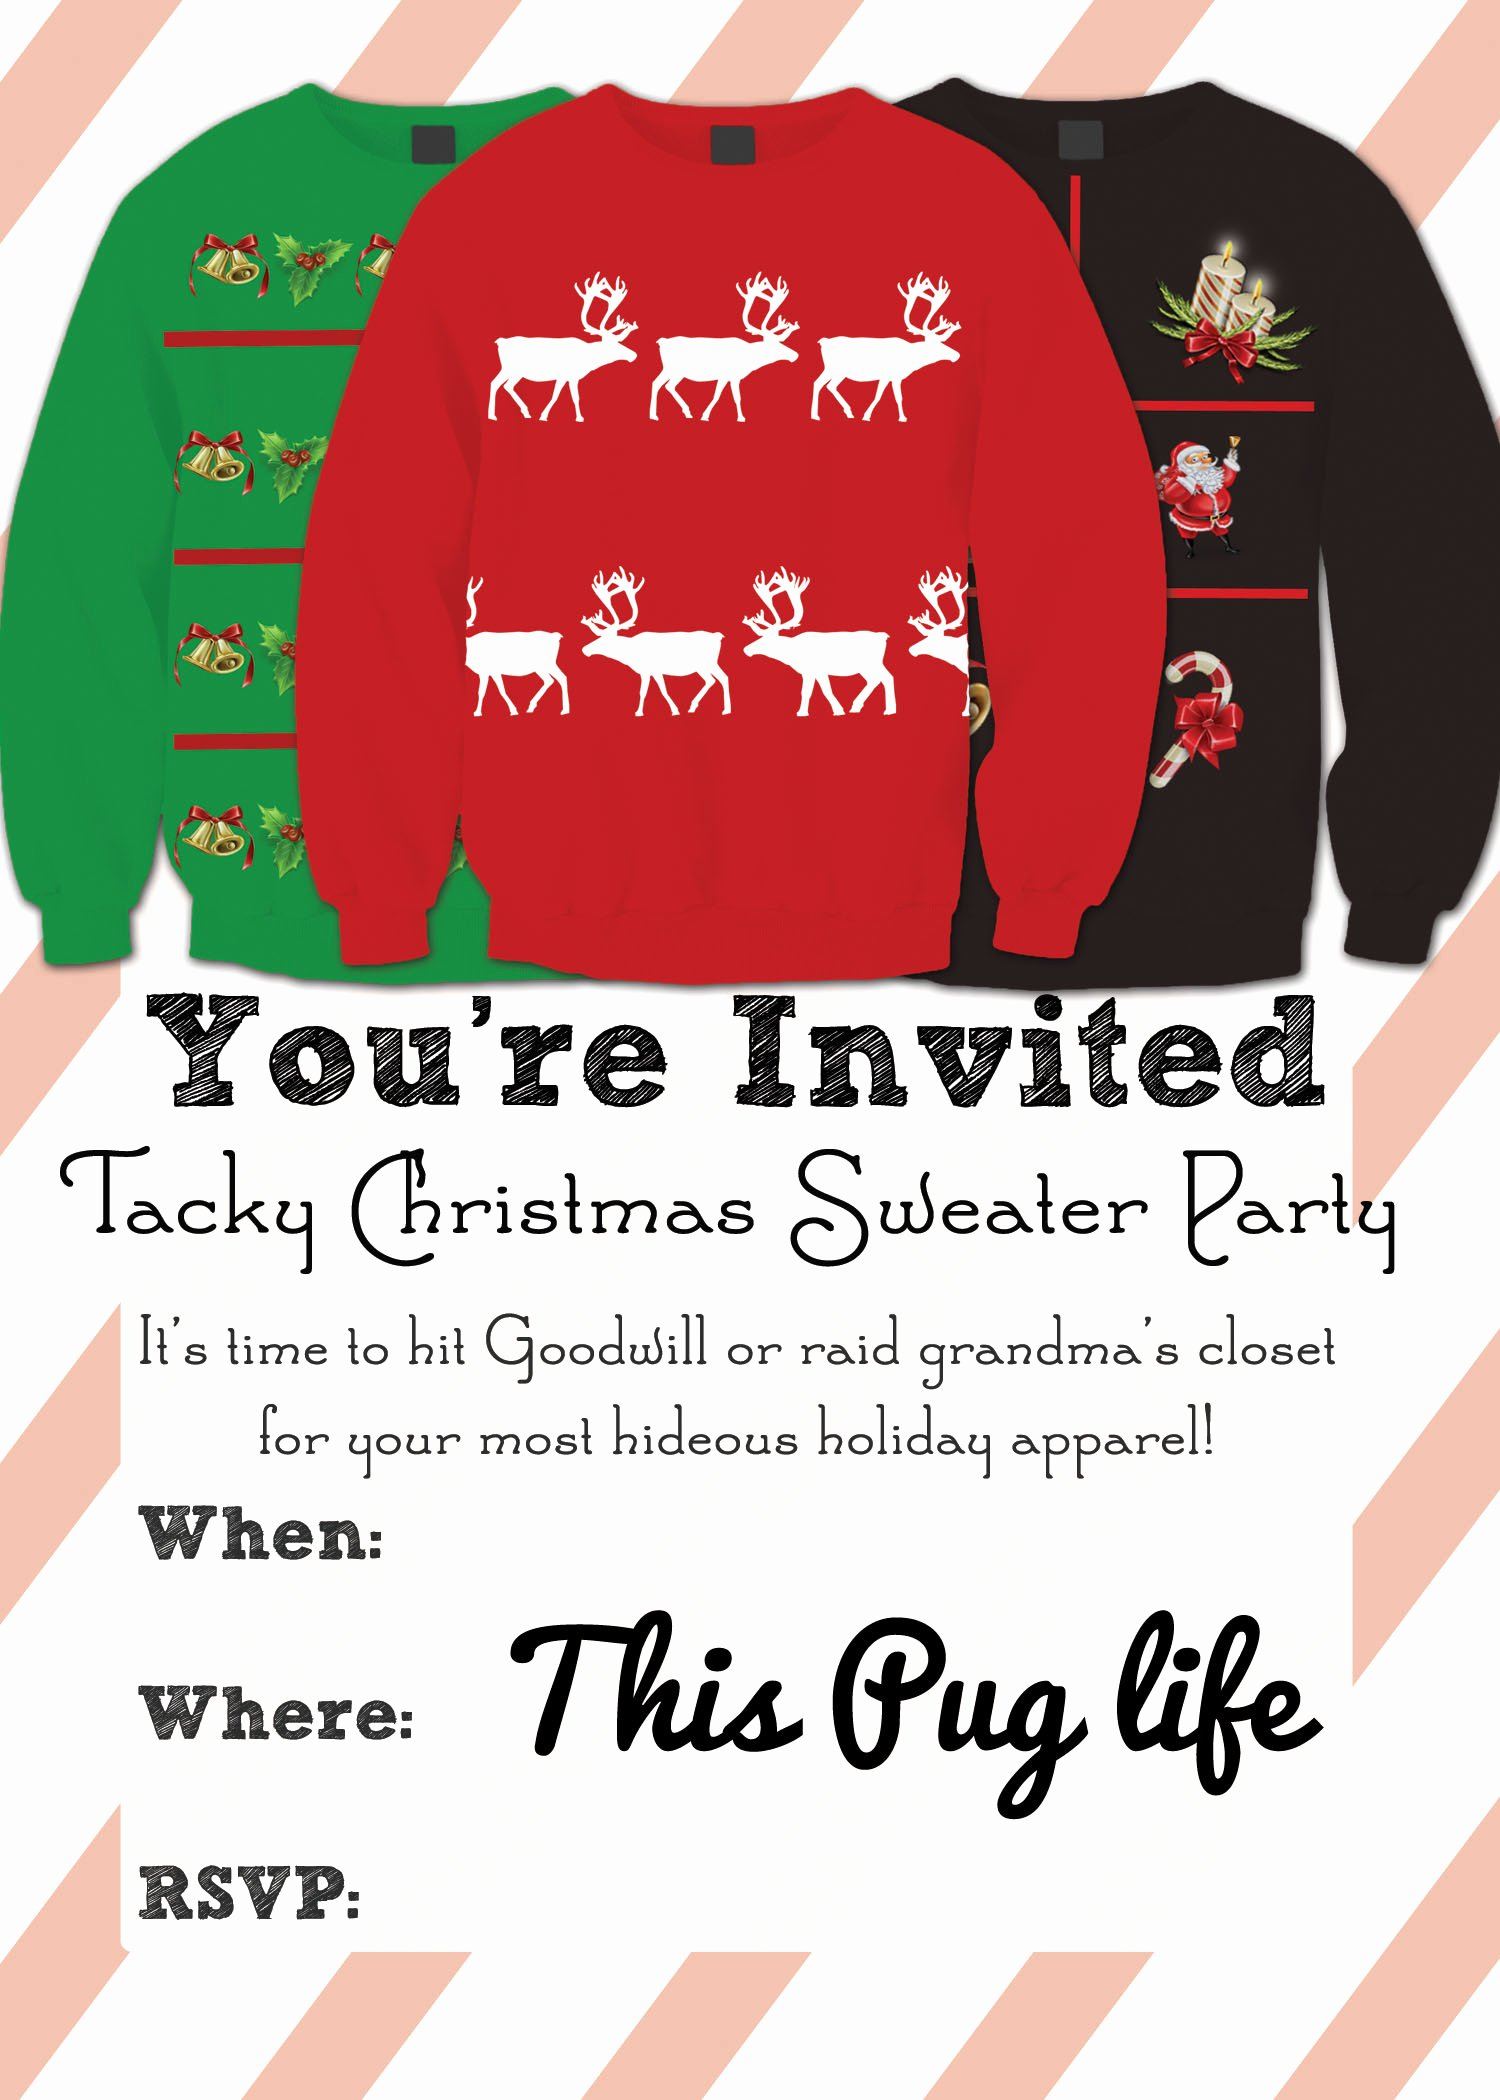 Ugly Sweater Party Invitation Template Free Fresh Tacky Christmas Sweater Party Invitations – Free Printable